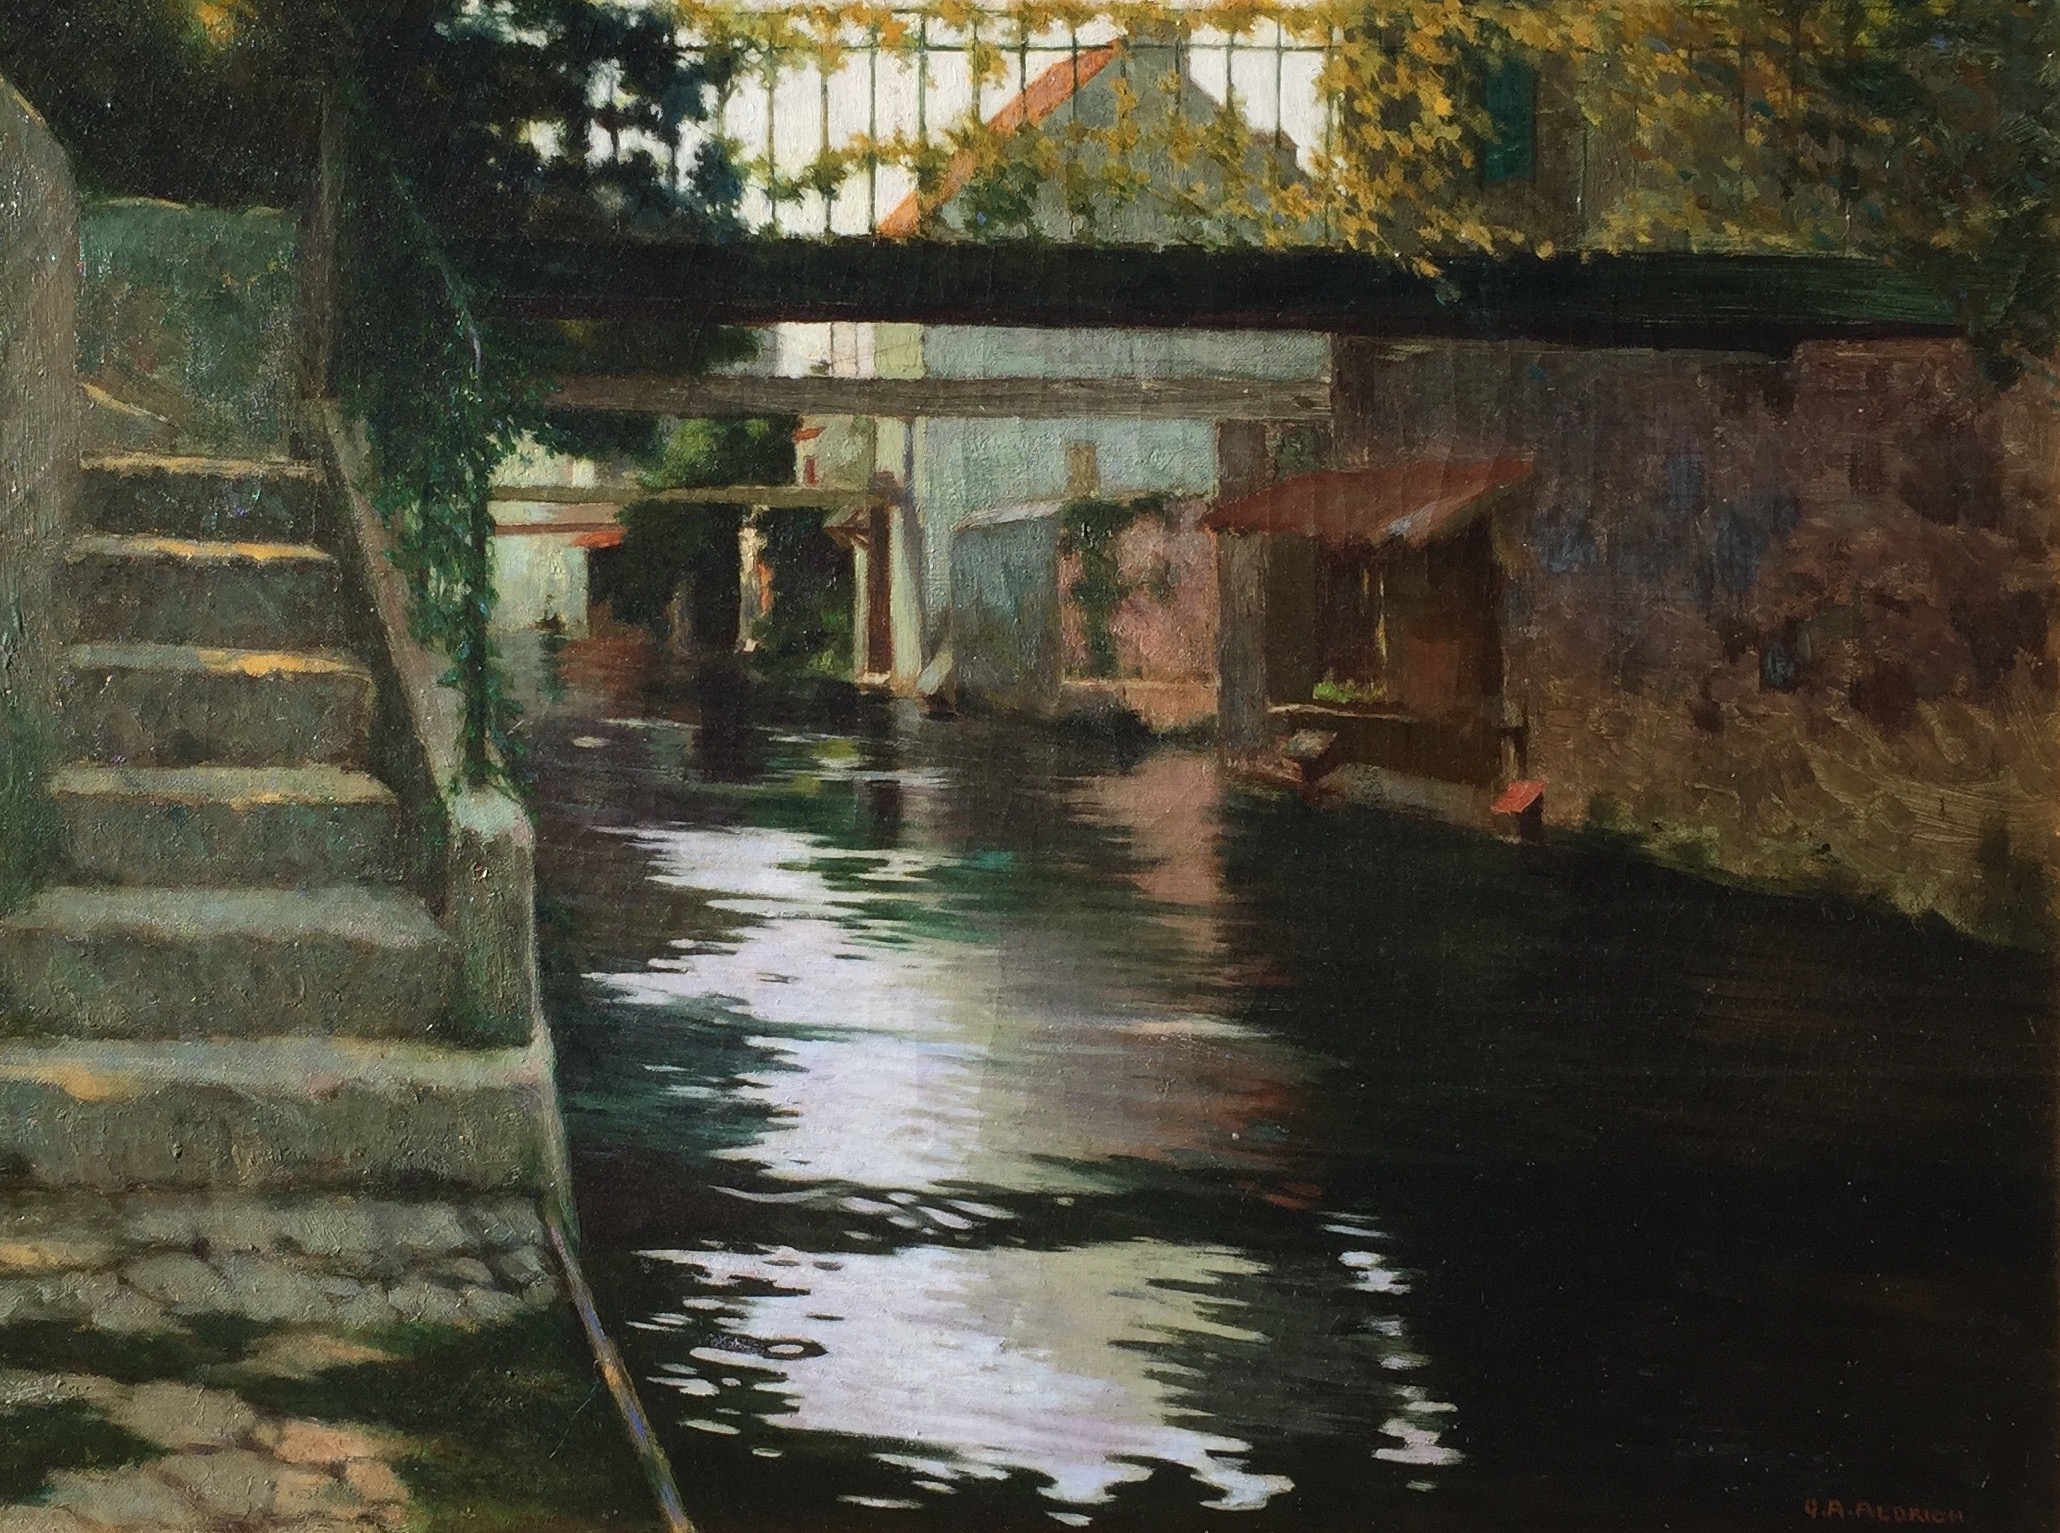 aldrich-thecanal-cropped